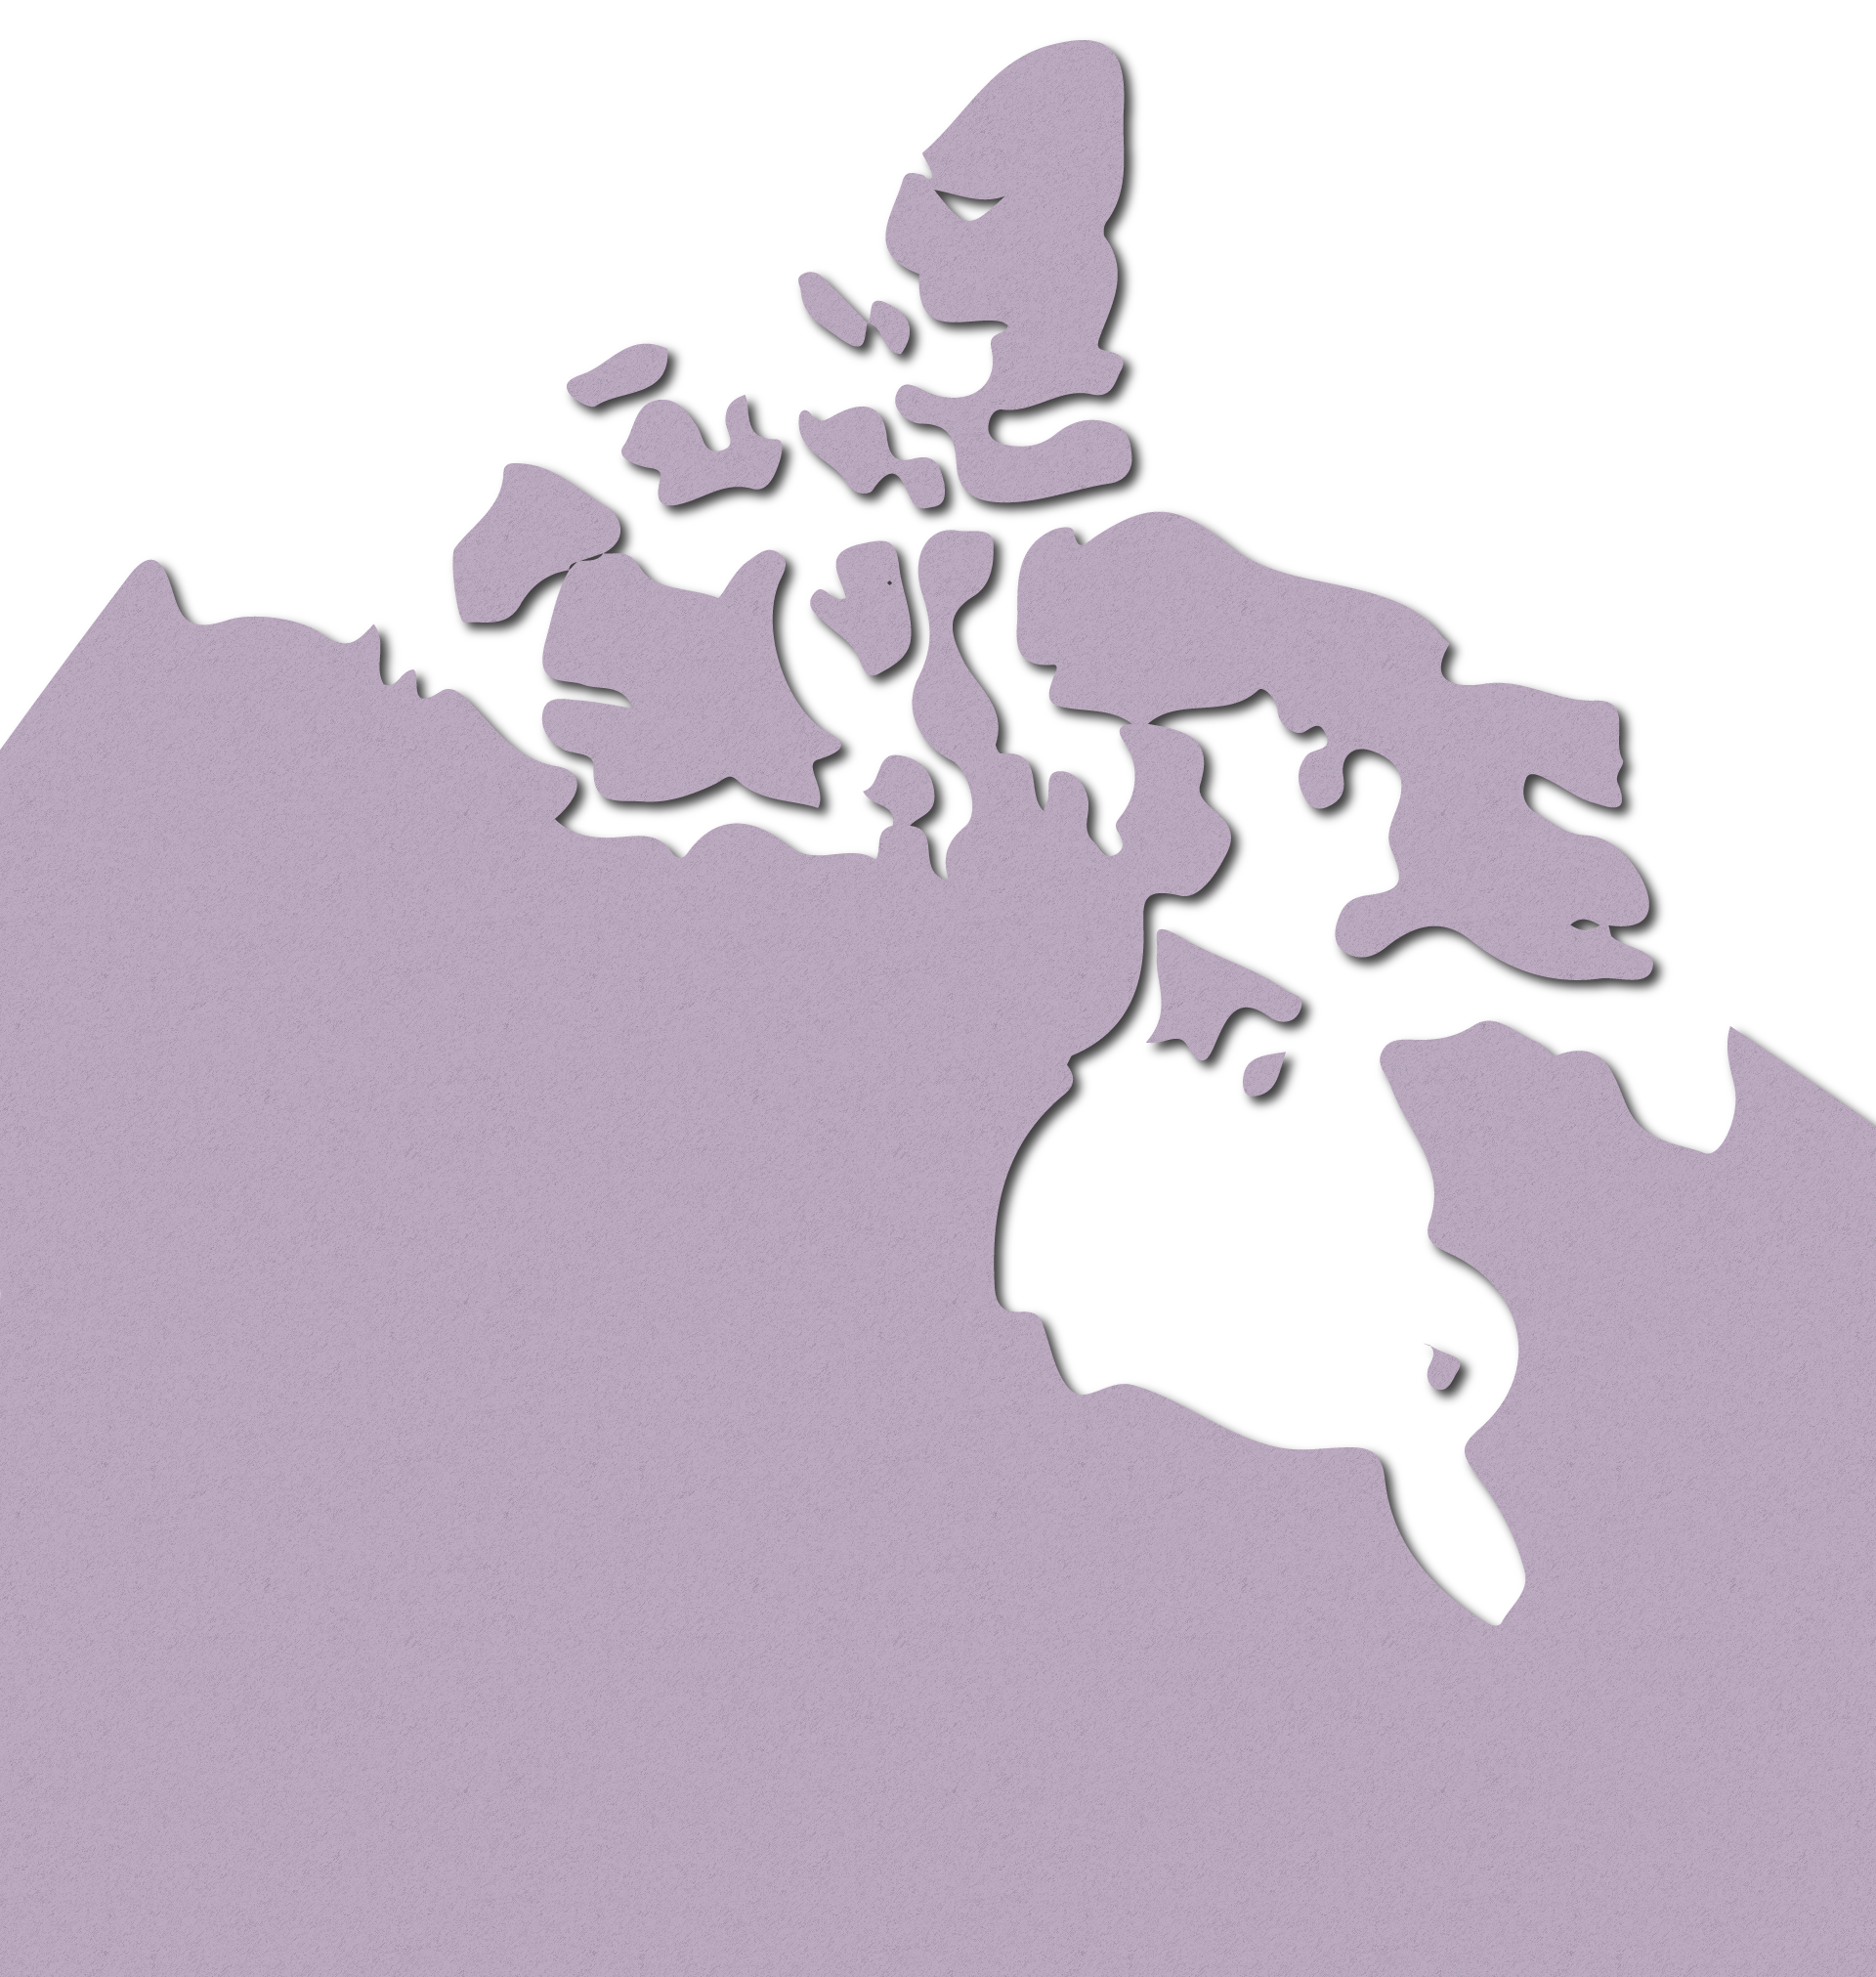 A paper map of Canada